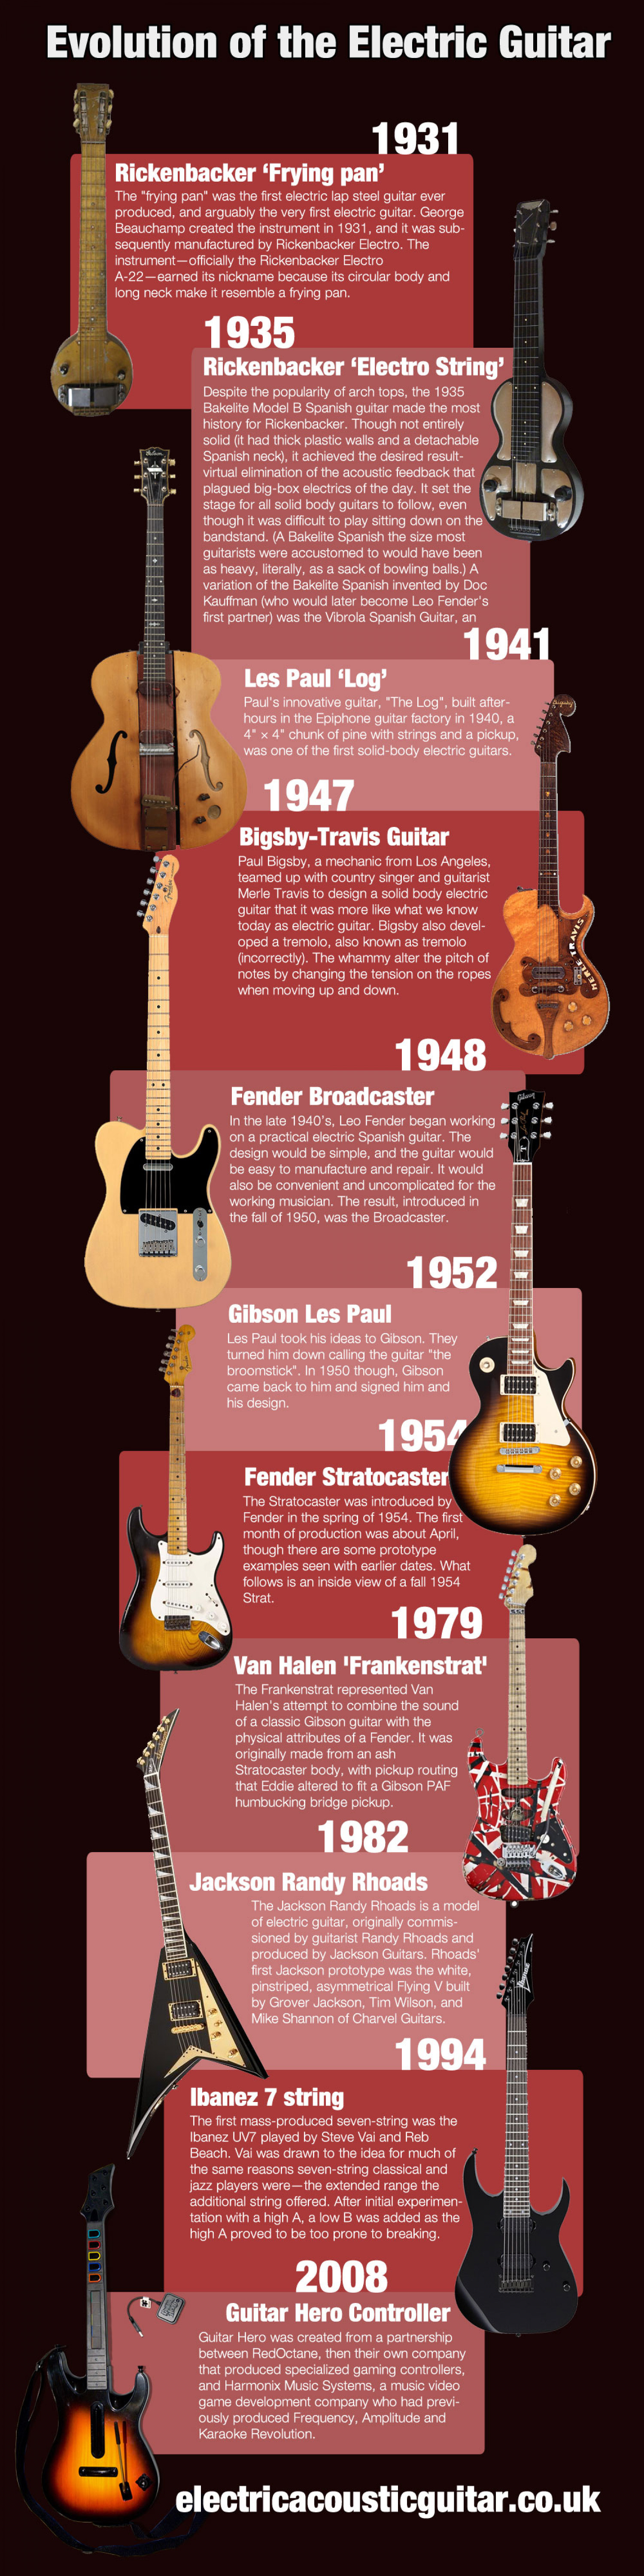 Evolution Of The Electric Guitar Infographic